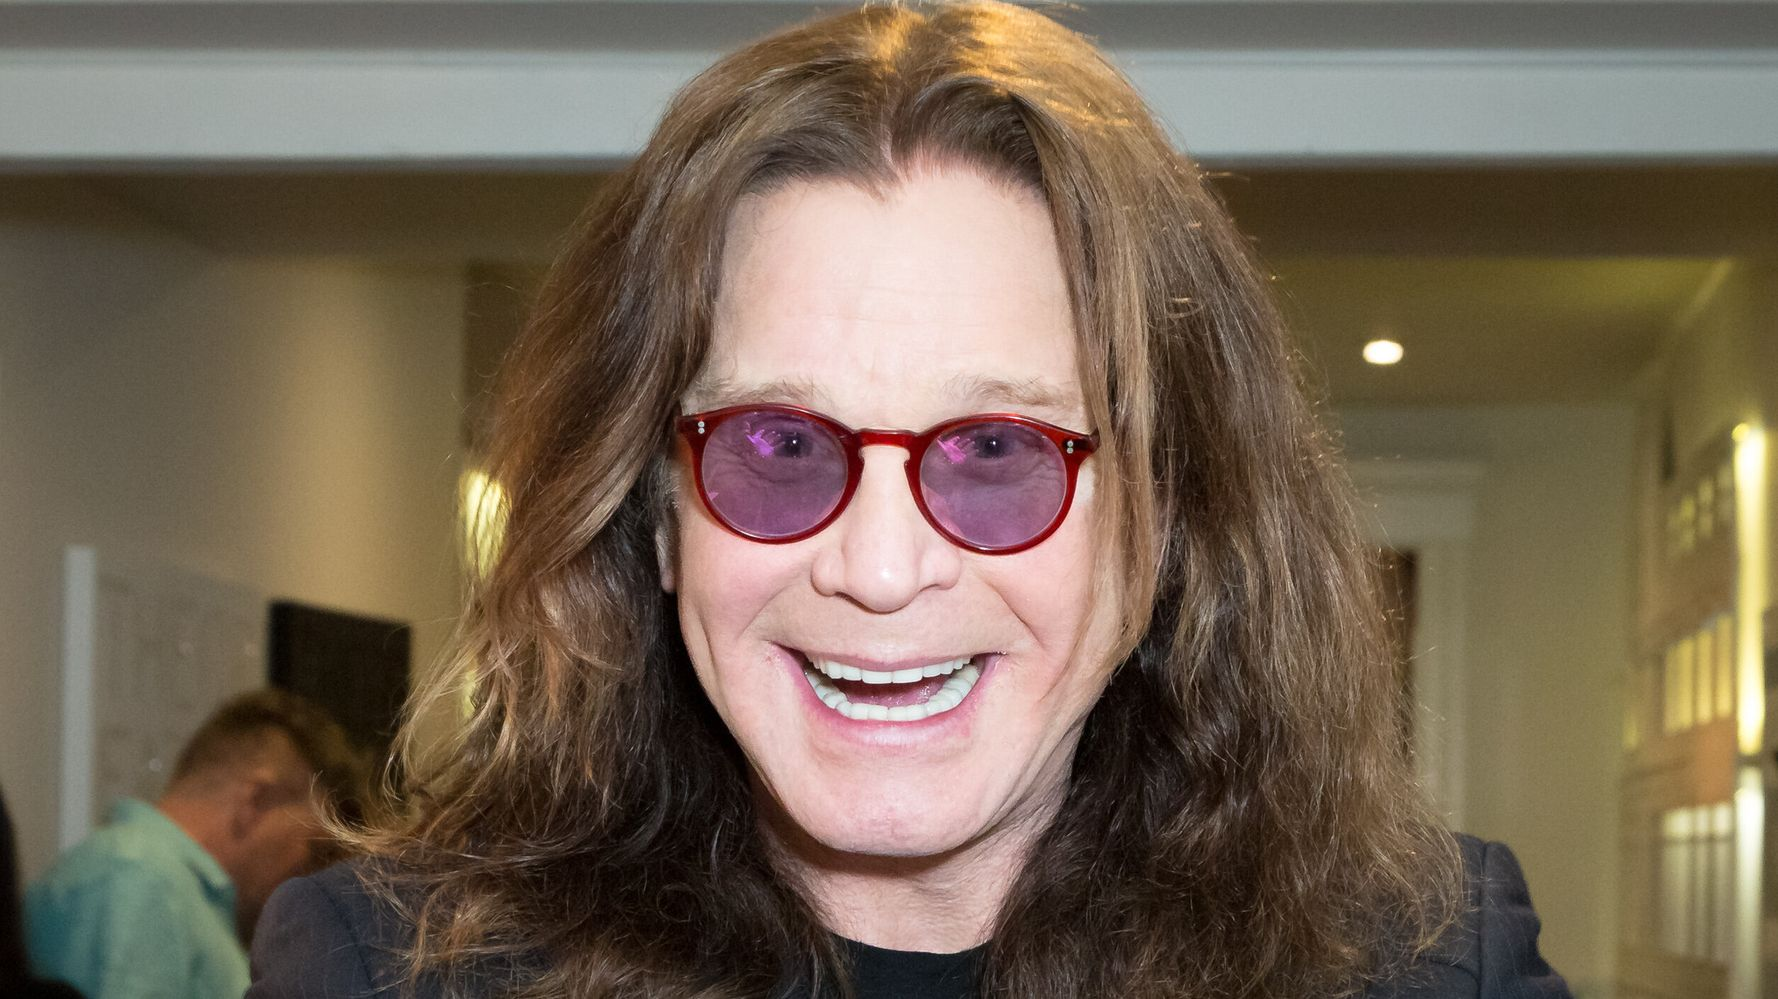 Paging Dr. Satan: Ozzy Osbourne Jokingly Credits Devil For COVID-19 Protection 1